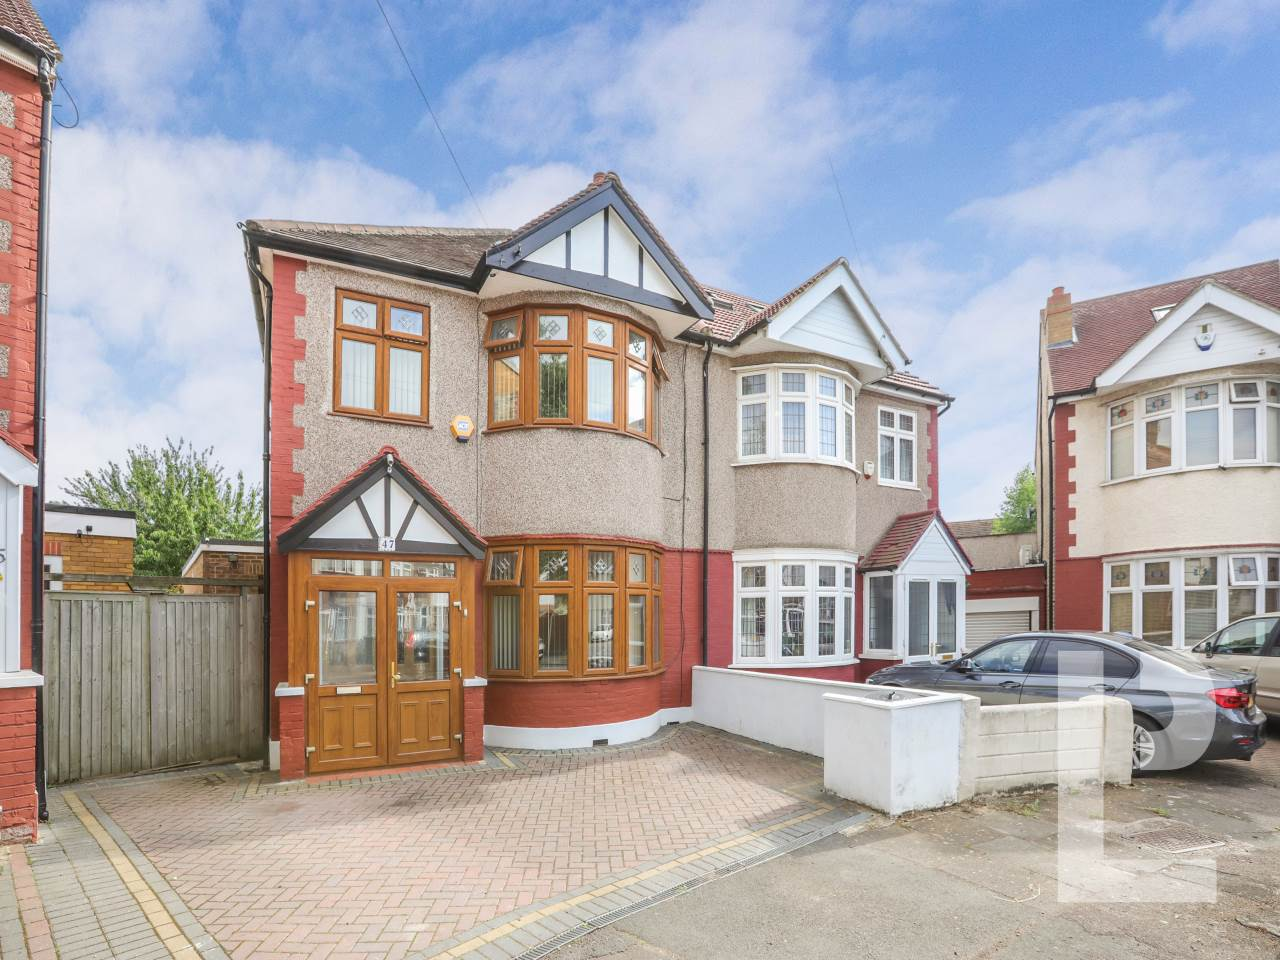 4 bed house for sale in Newbury Park   - Property Image 1